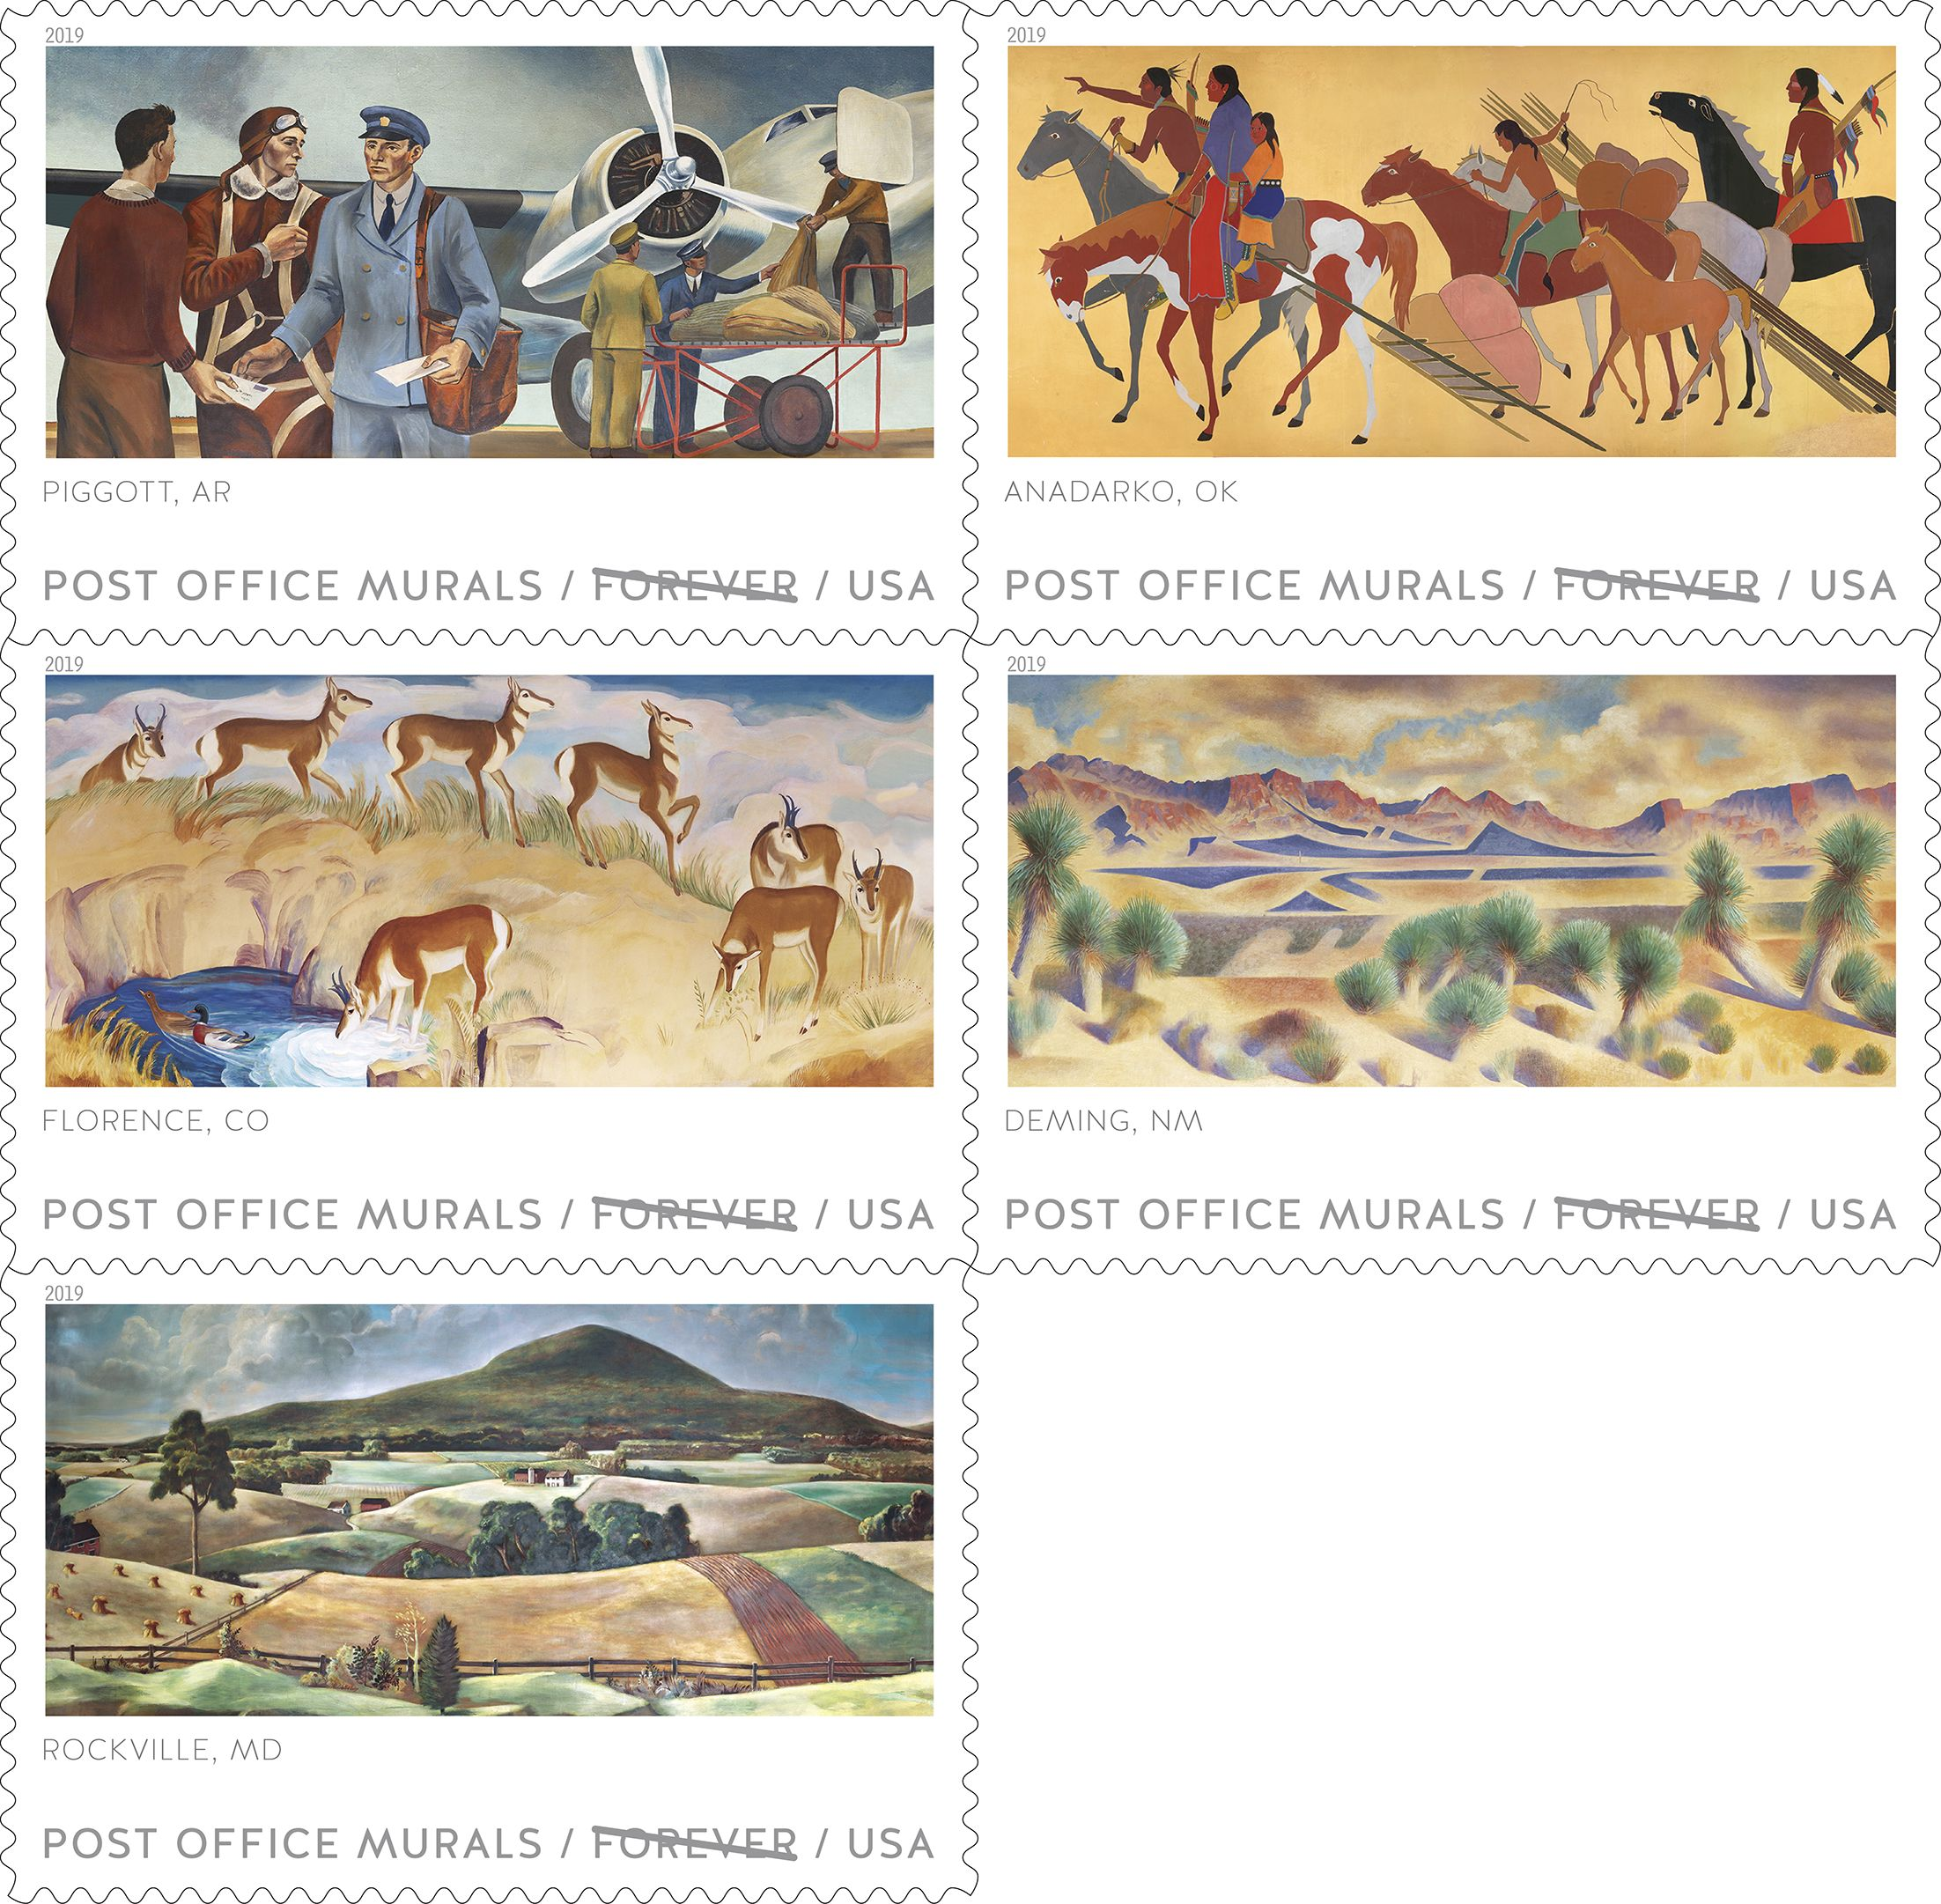 Usps Christmas Stamps.Usps New Stamp Issues 2019 On Stampnewsnow Com